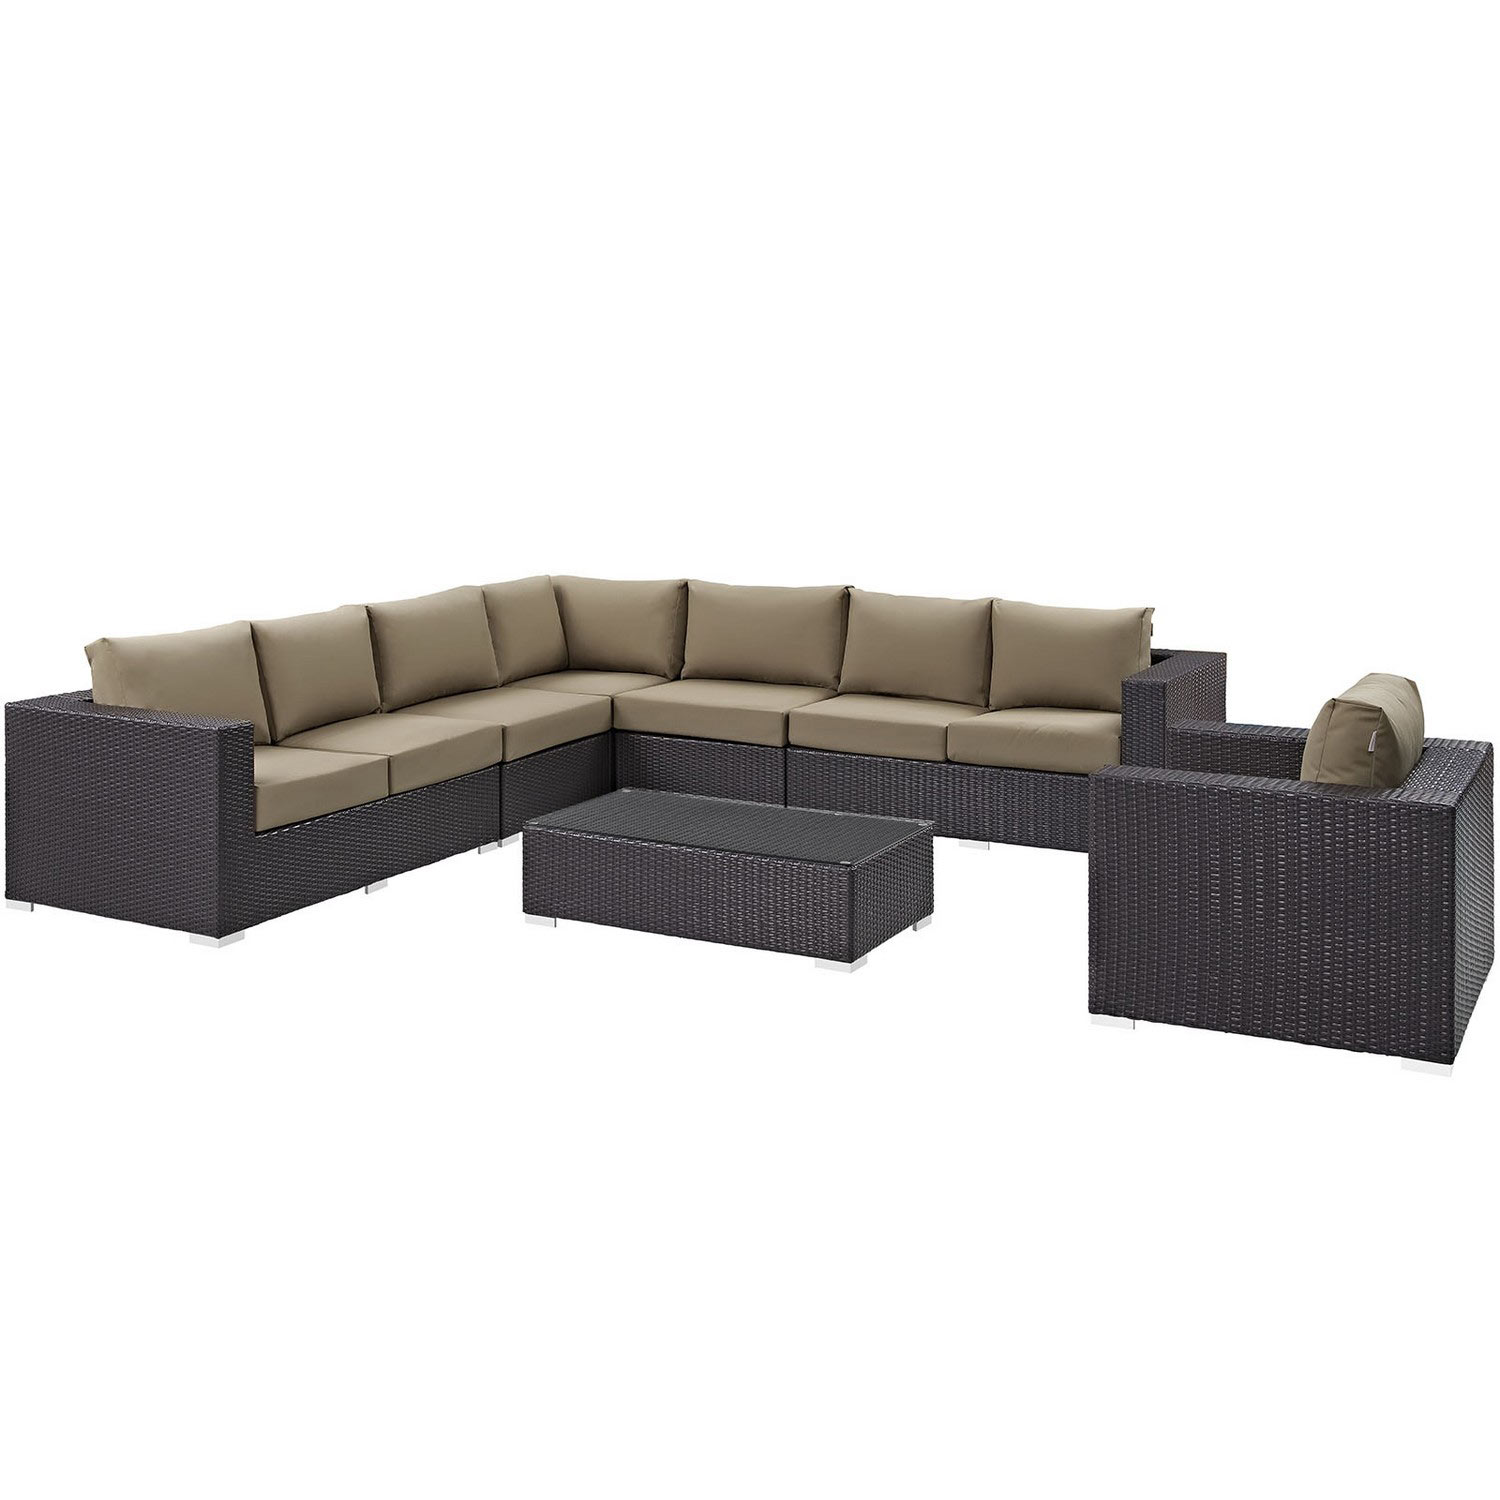 Modway Convene 7 Piece Outdoor Patio Sectional Set - Espresso Mocha